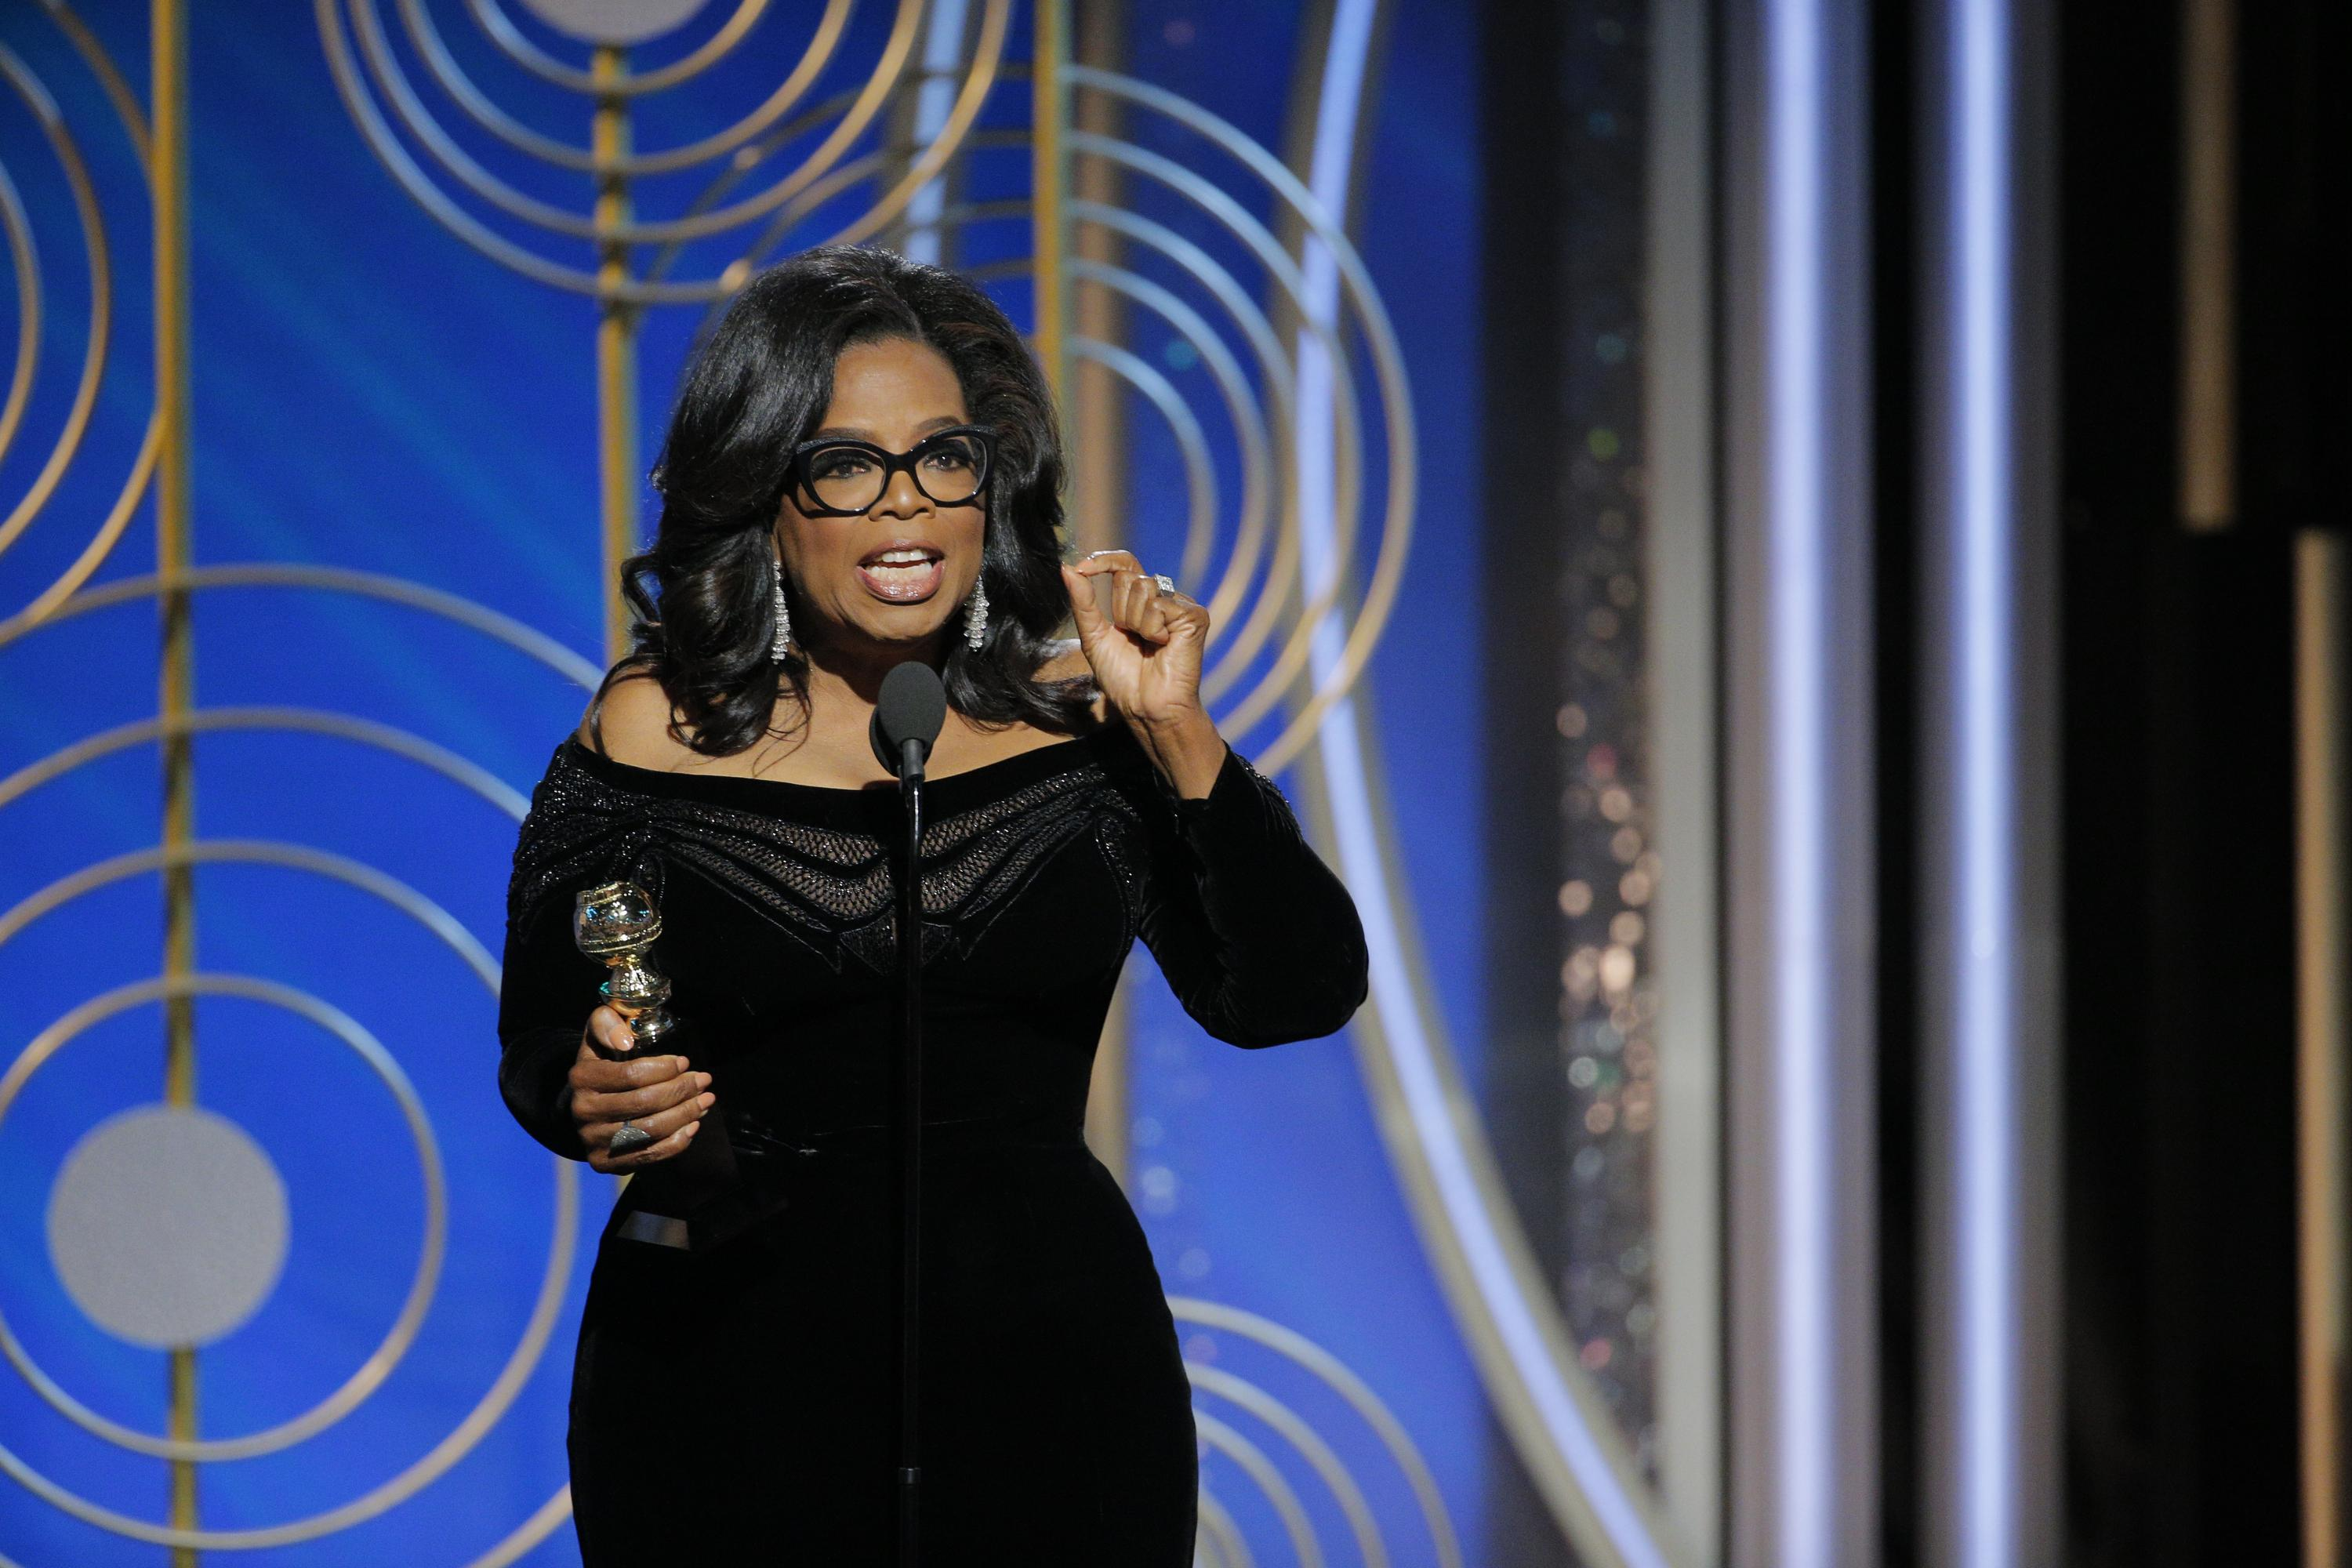 Weight Watchers stock jumped more than 13% after Oprah's Golden Globes speech